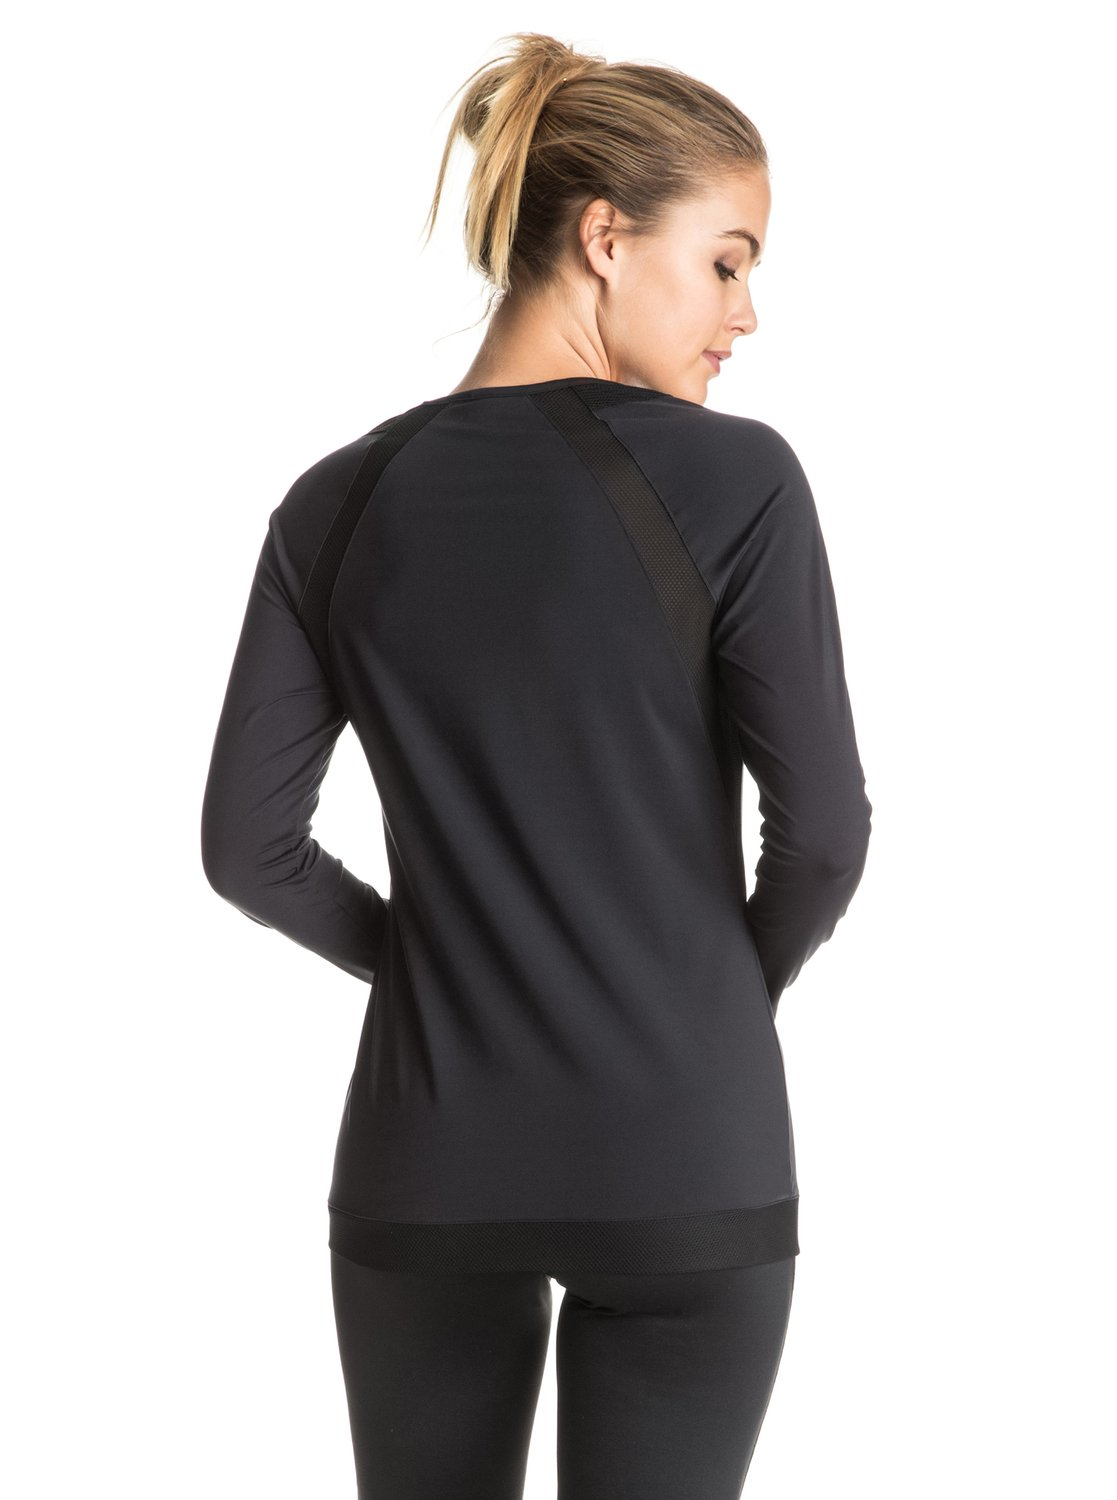 Shop from the world's largest selection and best deals for Yoga Long Sleeve Exercise Shirts for Women. Free delivery and free returns on eBay Plus items.